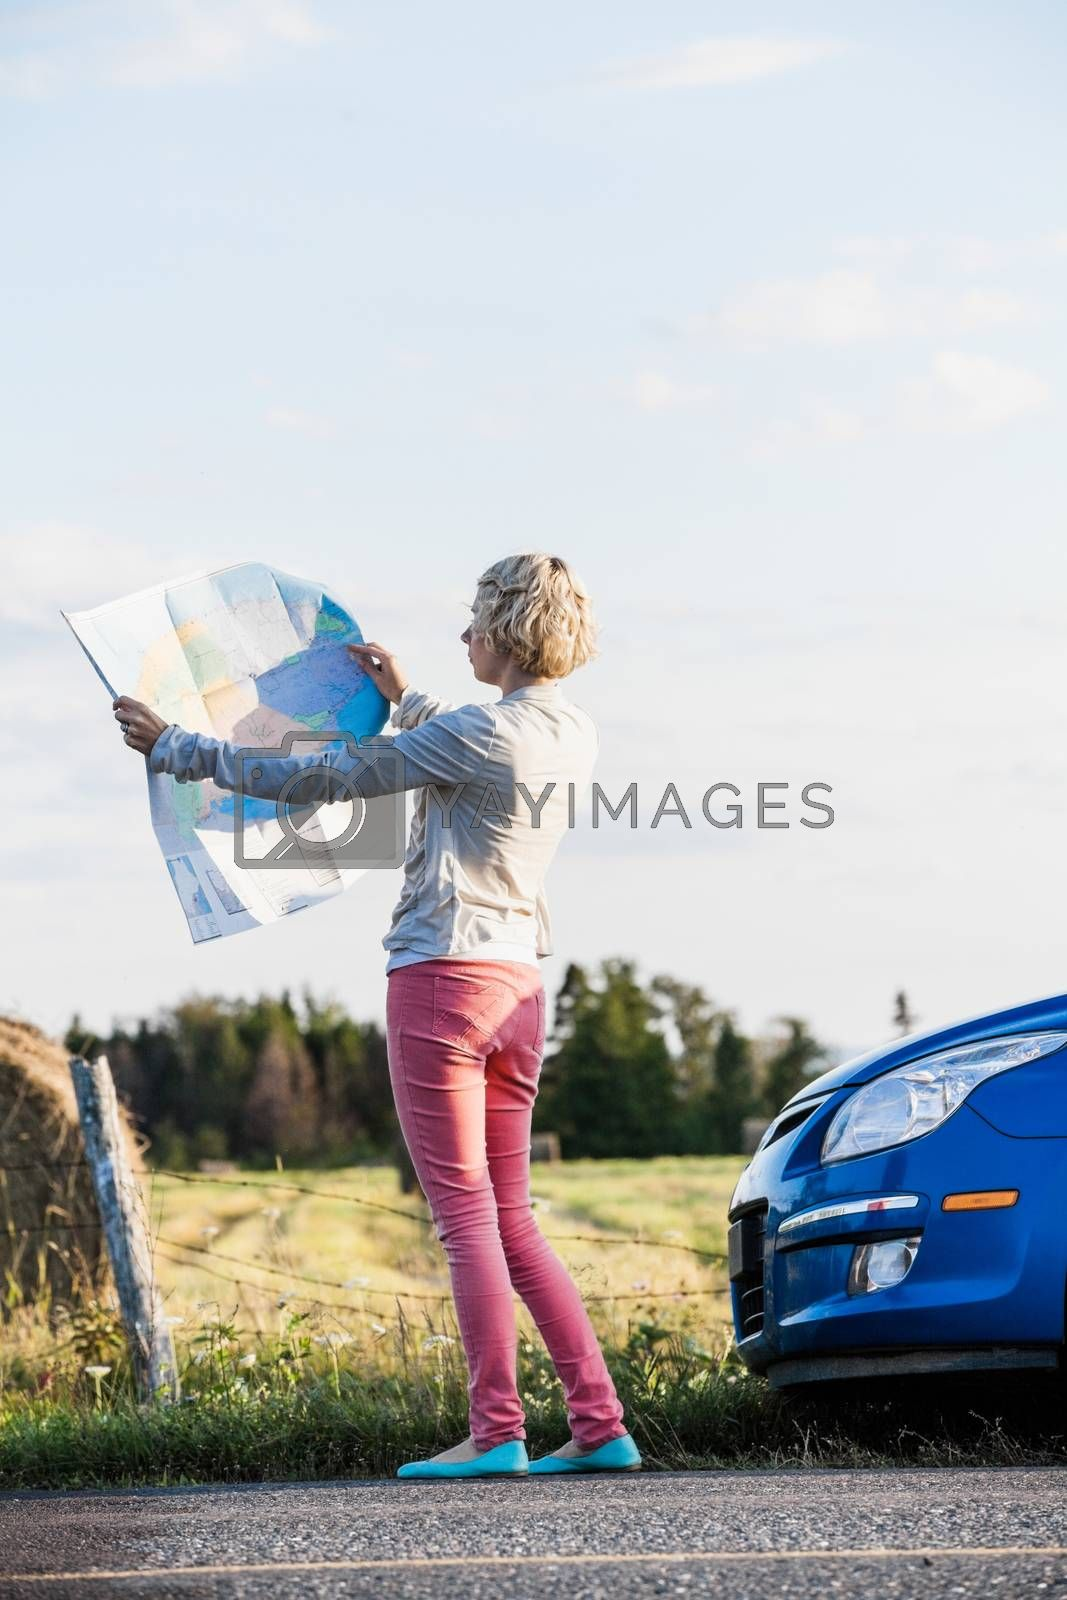 Lost Woman on a Rural Scene Looking at a Map